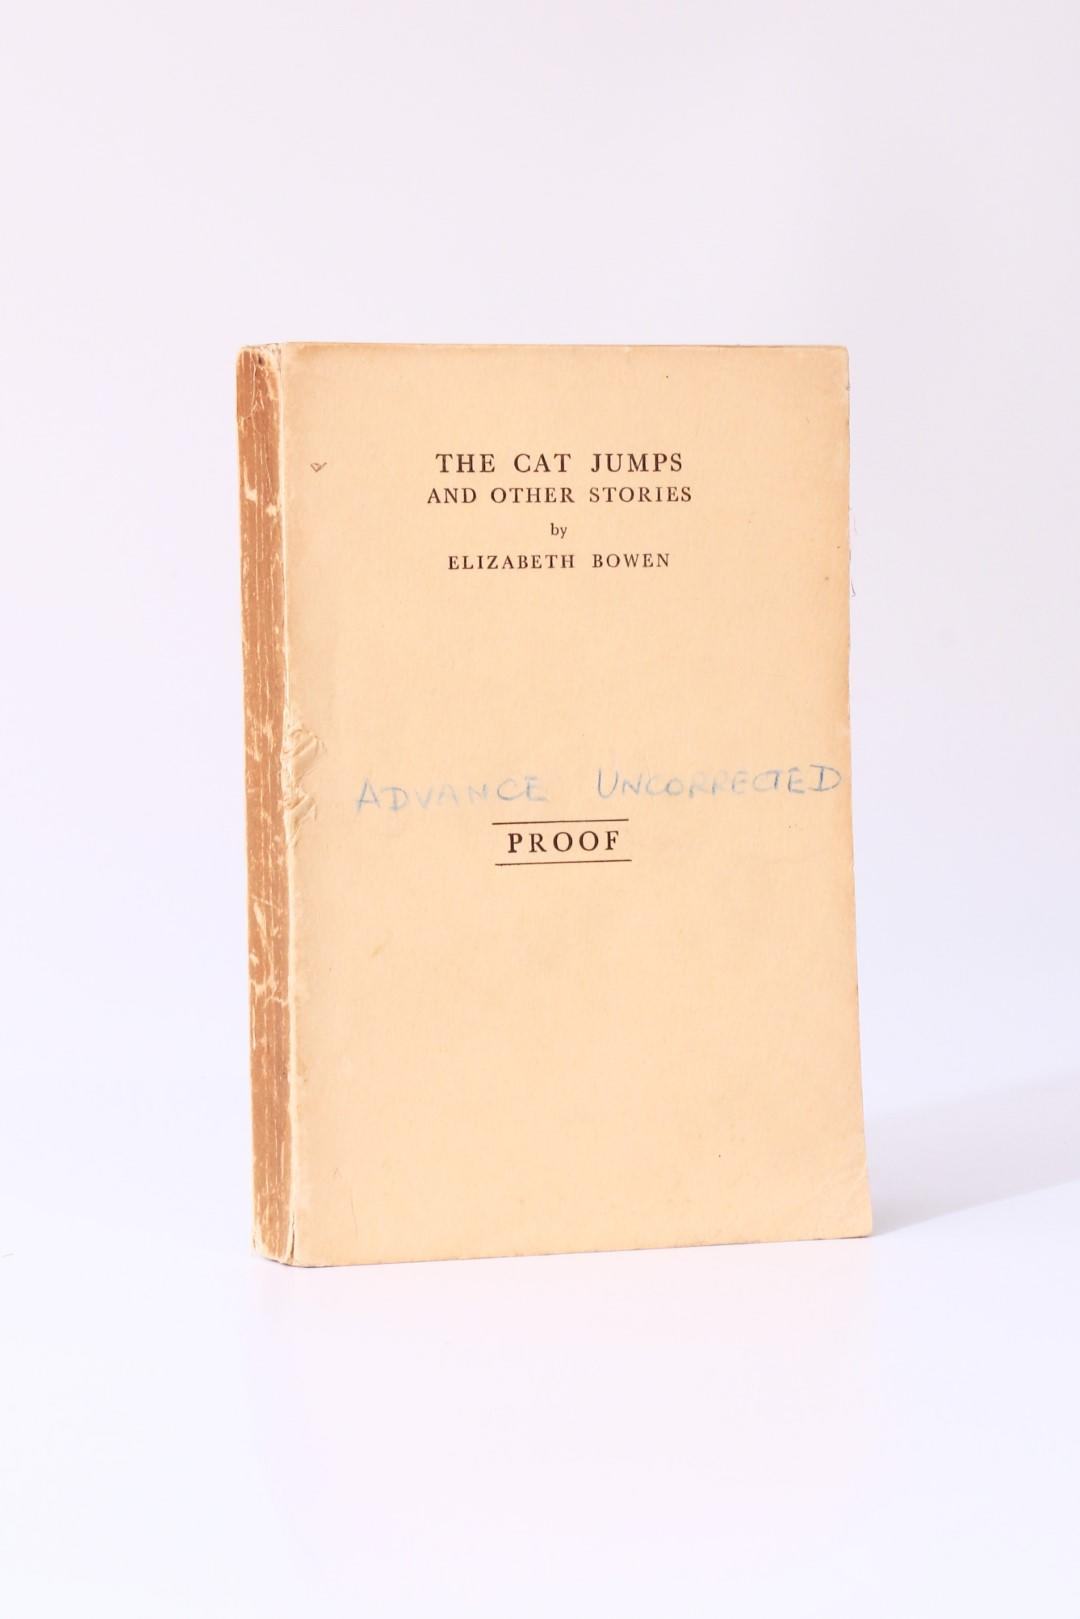 Elizabeth Bowen - The Cat Jumps and Other Stories - Gollancz, 1934, Proof.